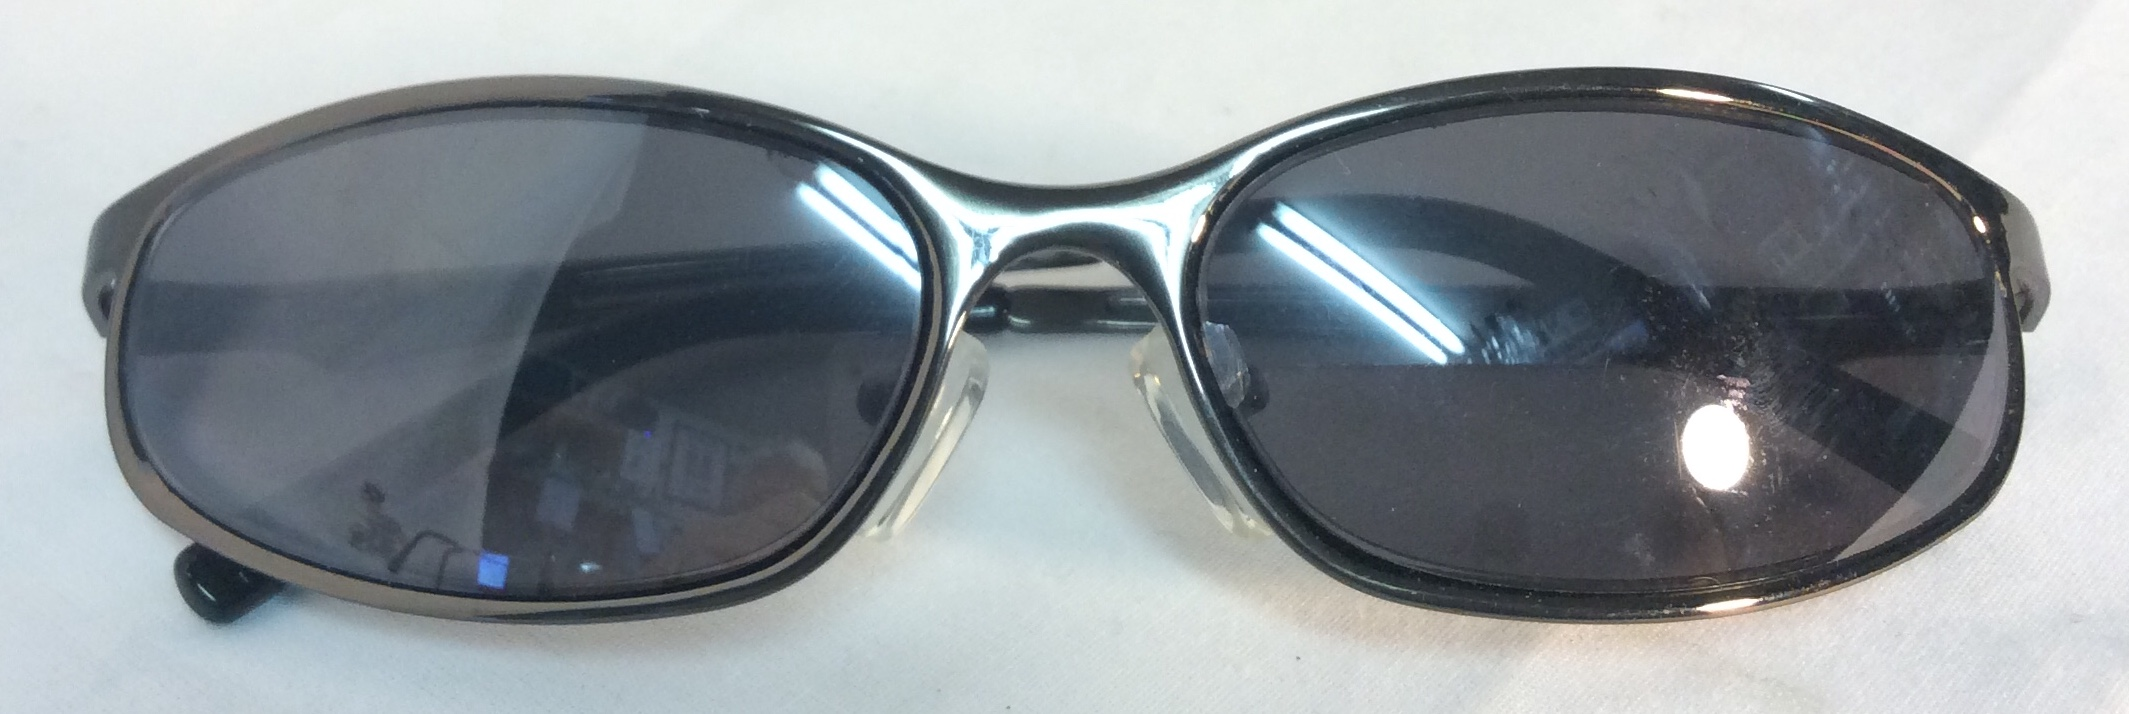 Dark chrome framed sunglasses